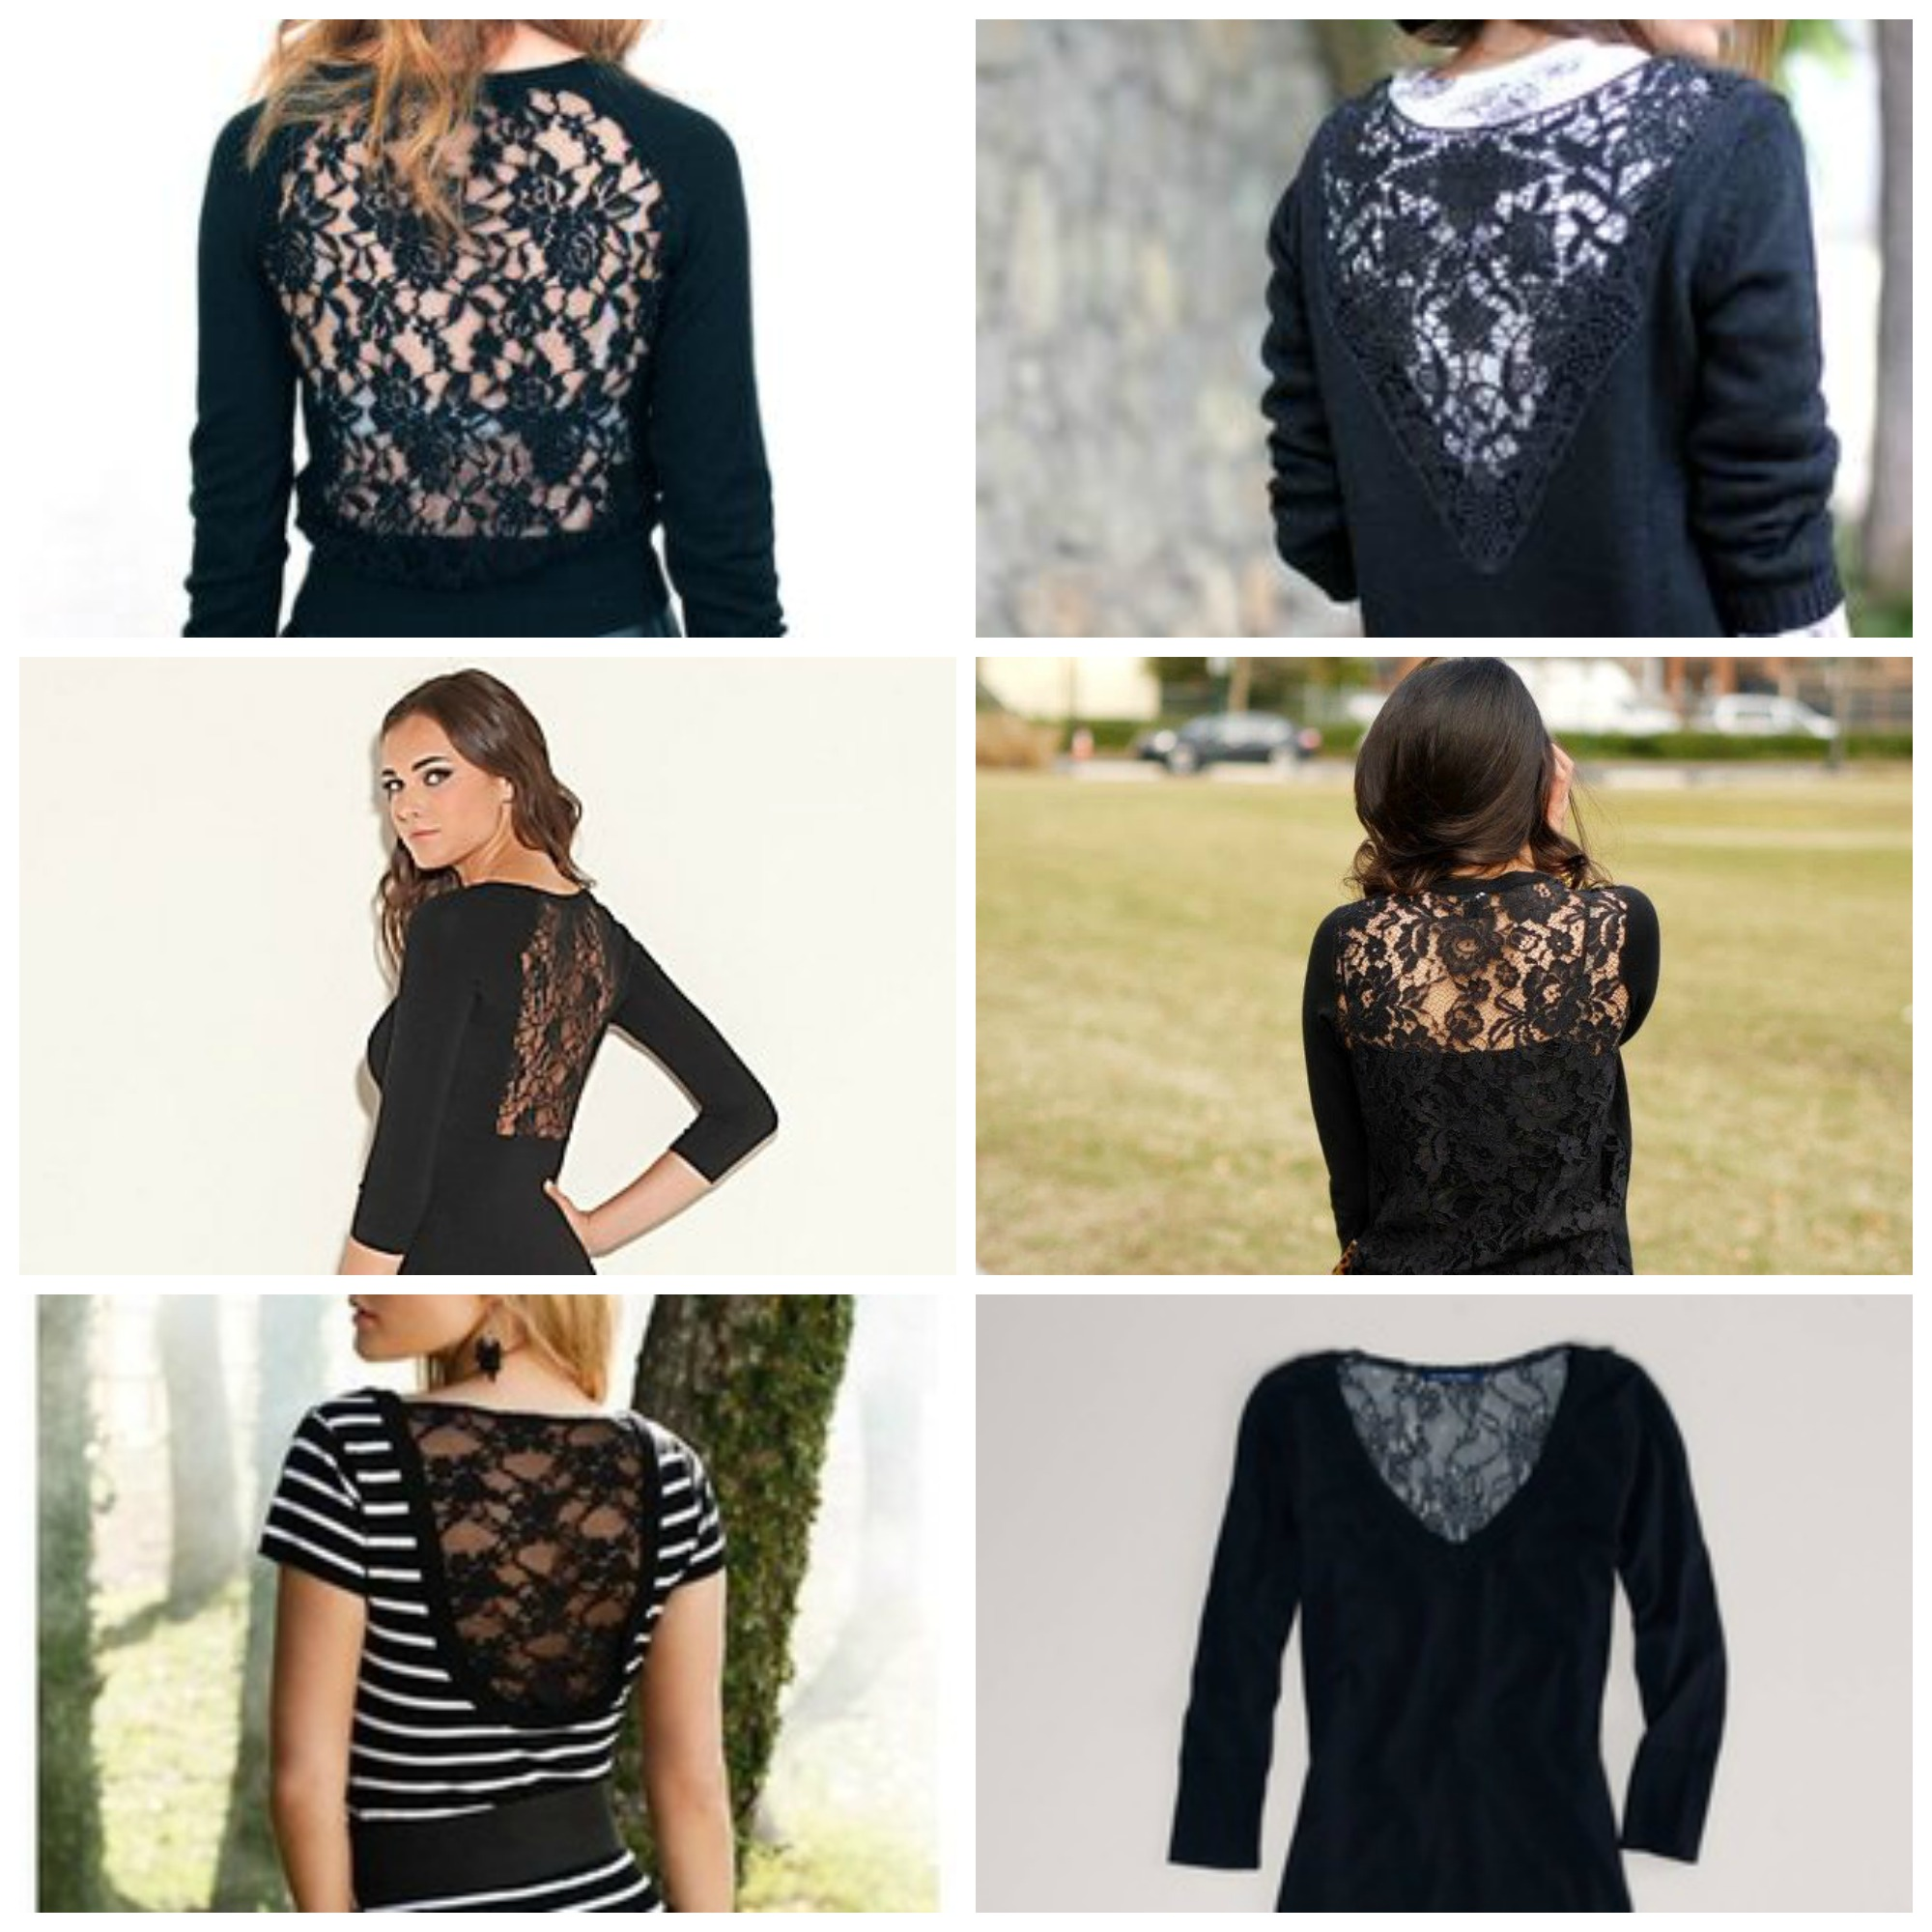 Sew: Lace Back Sweater Refashion {Inserting Lace into a Sweater DIY Tutorial}